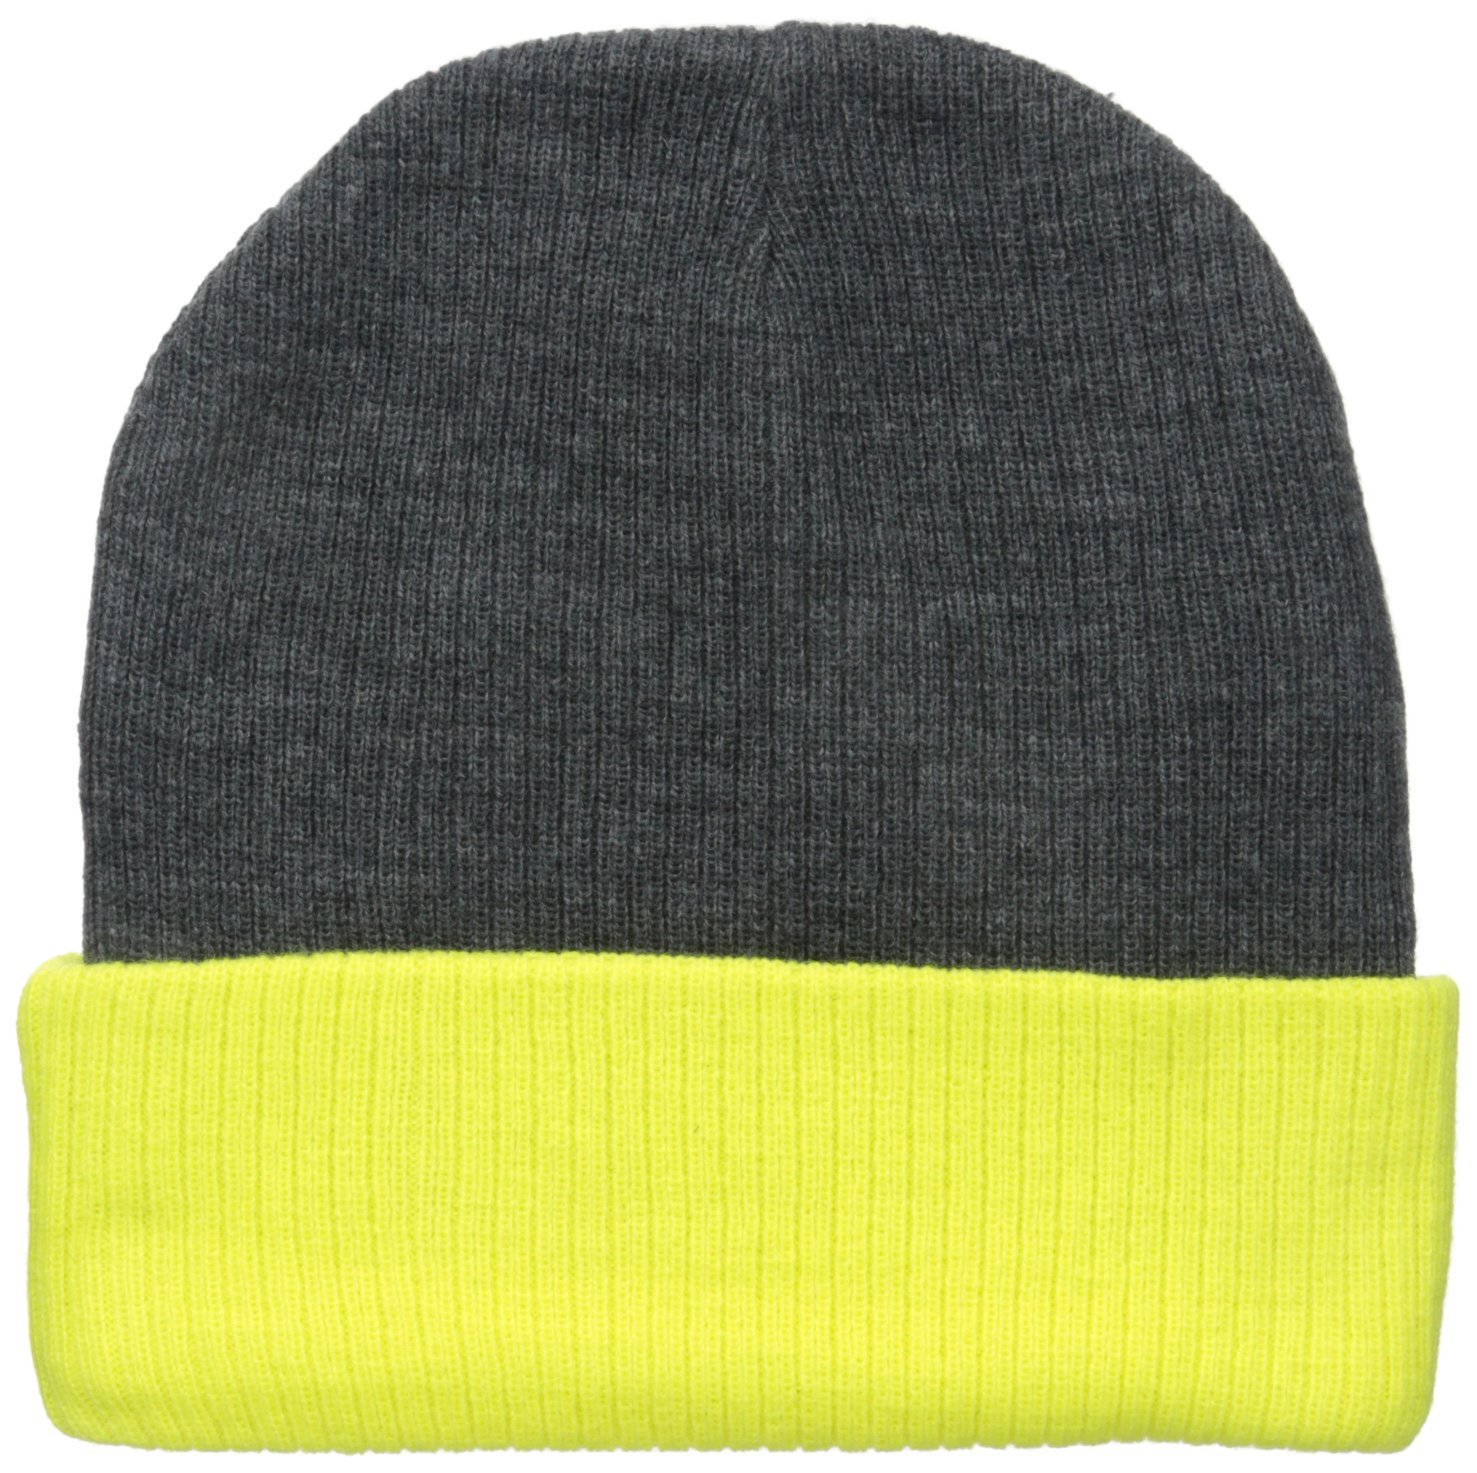 20c48d3fa3a Under Armour Womens Boyfriend Cuff Golf Beanie Hats